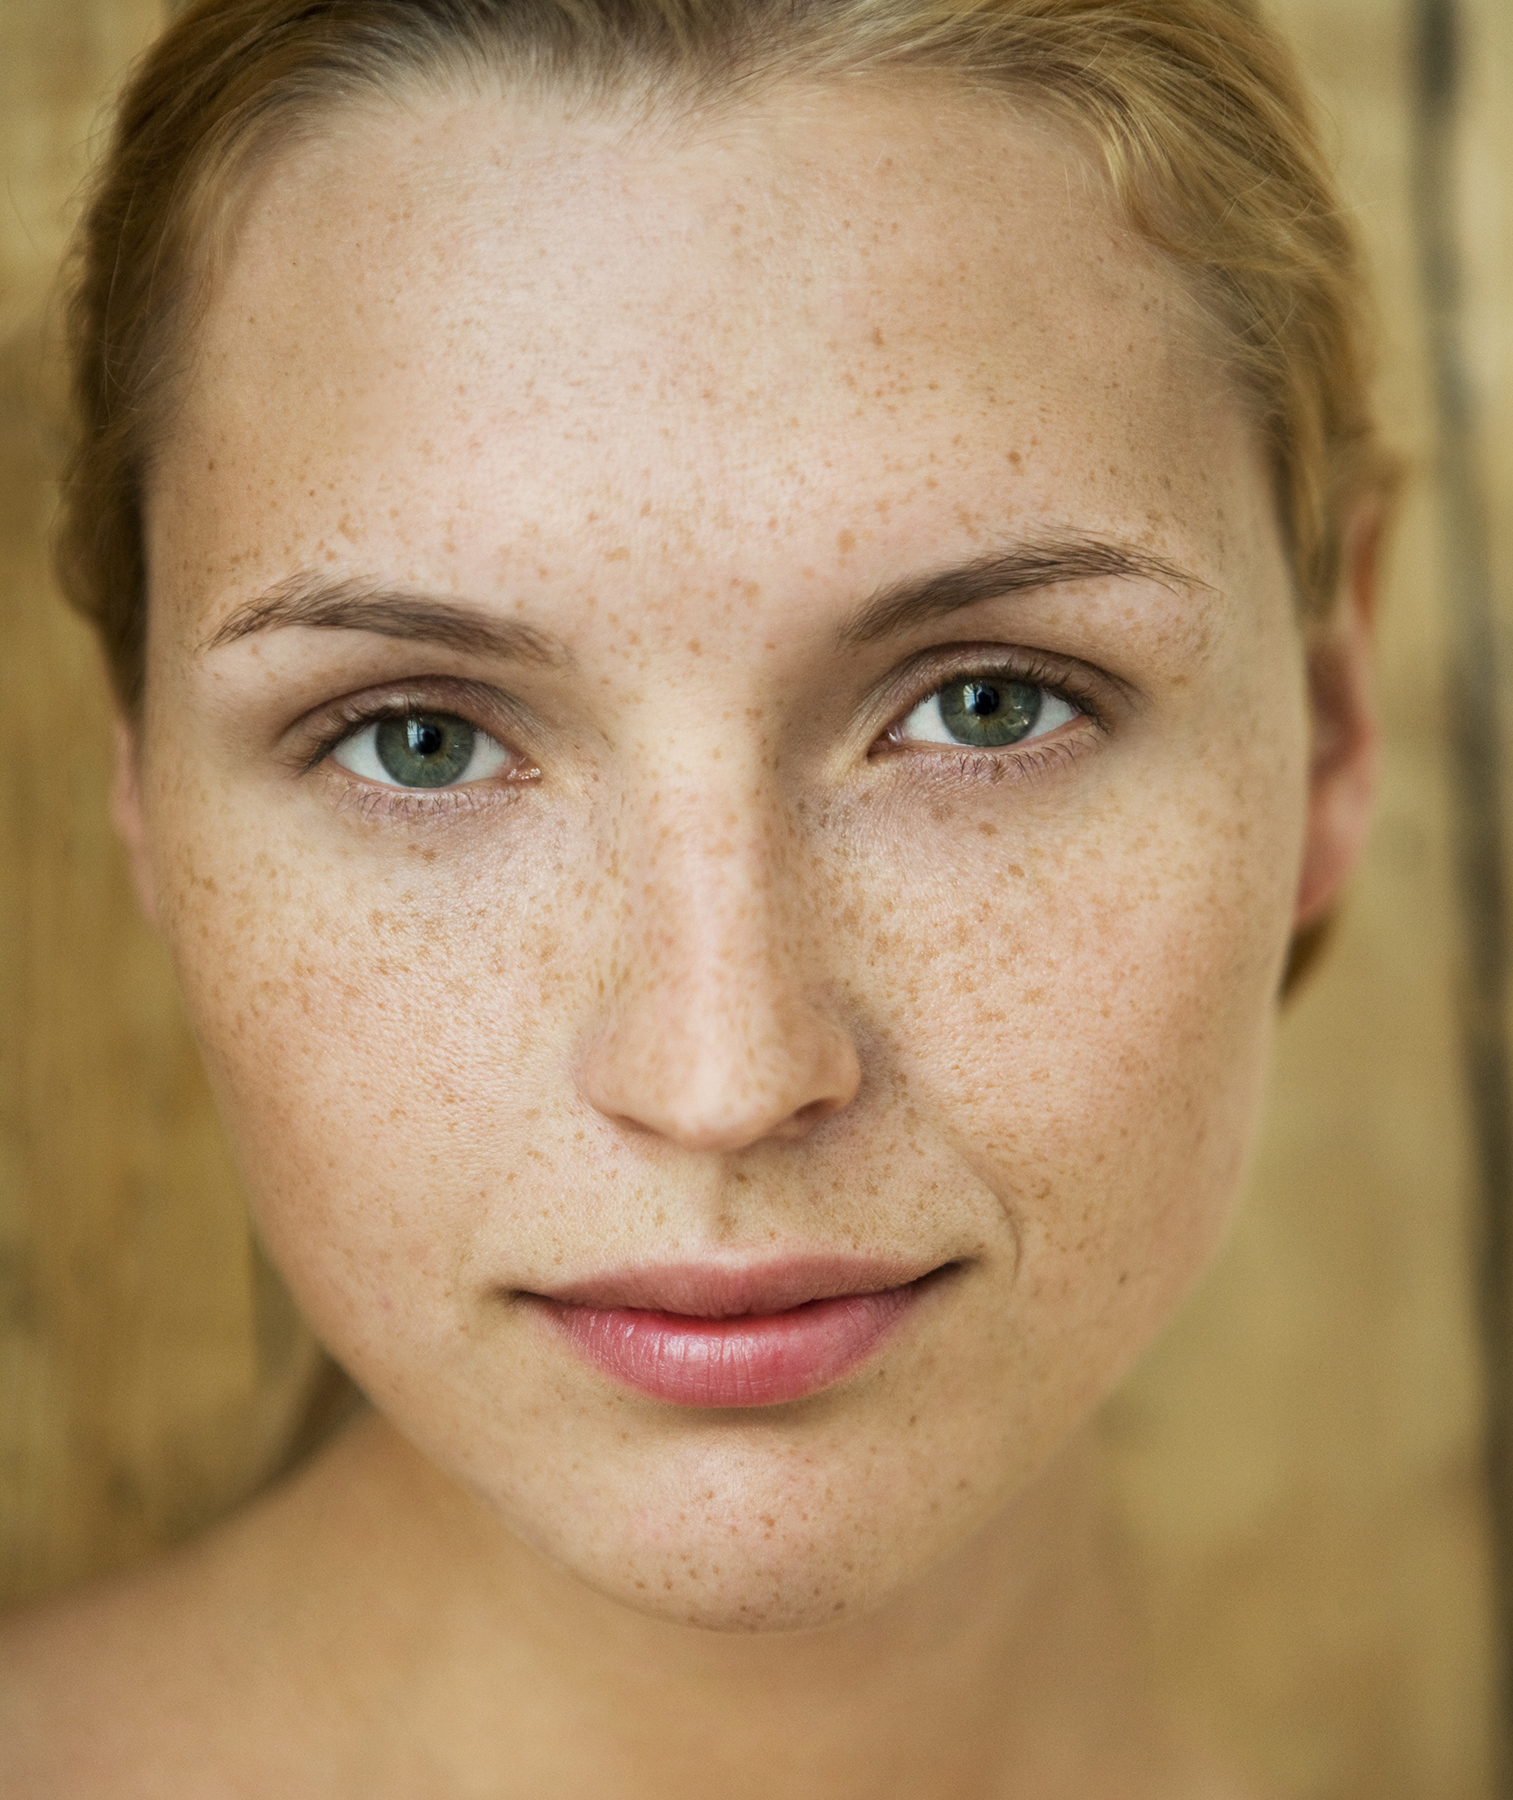 Woman with natural makeup